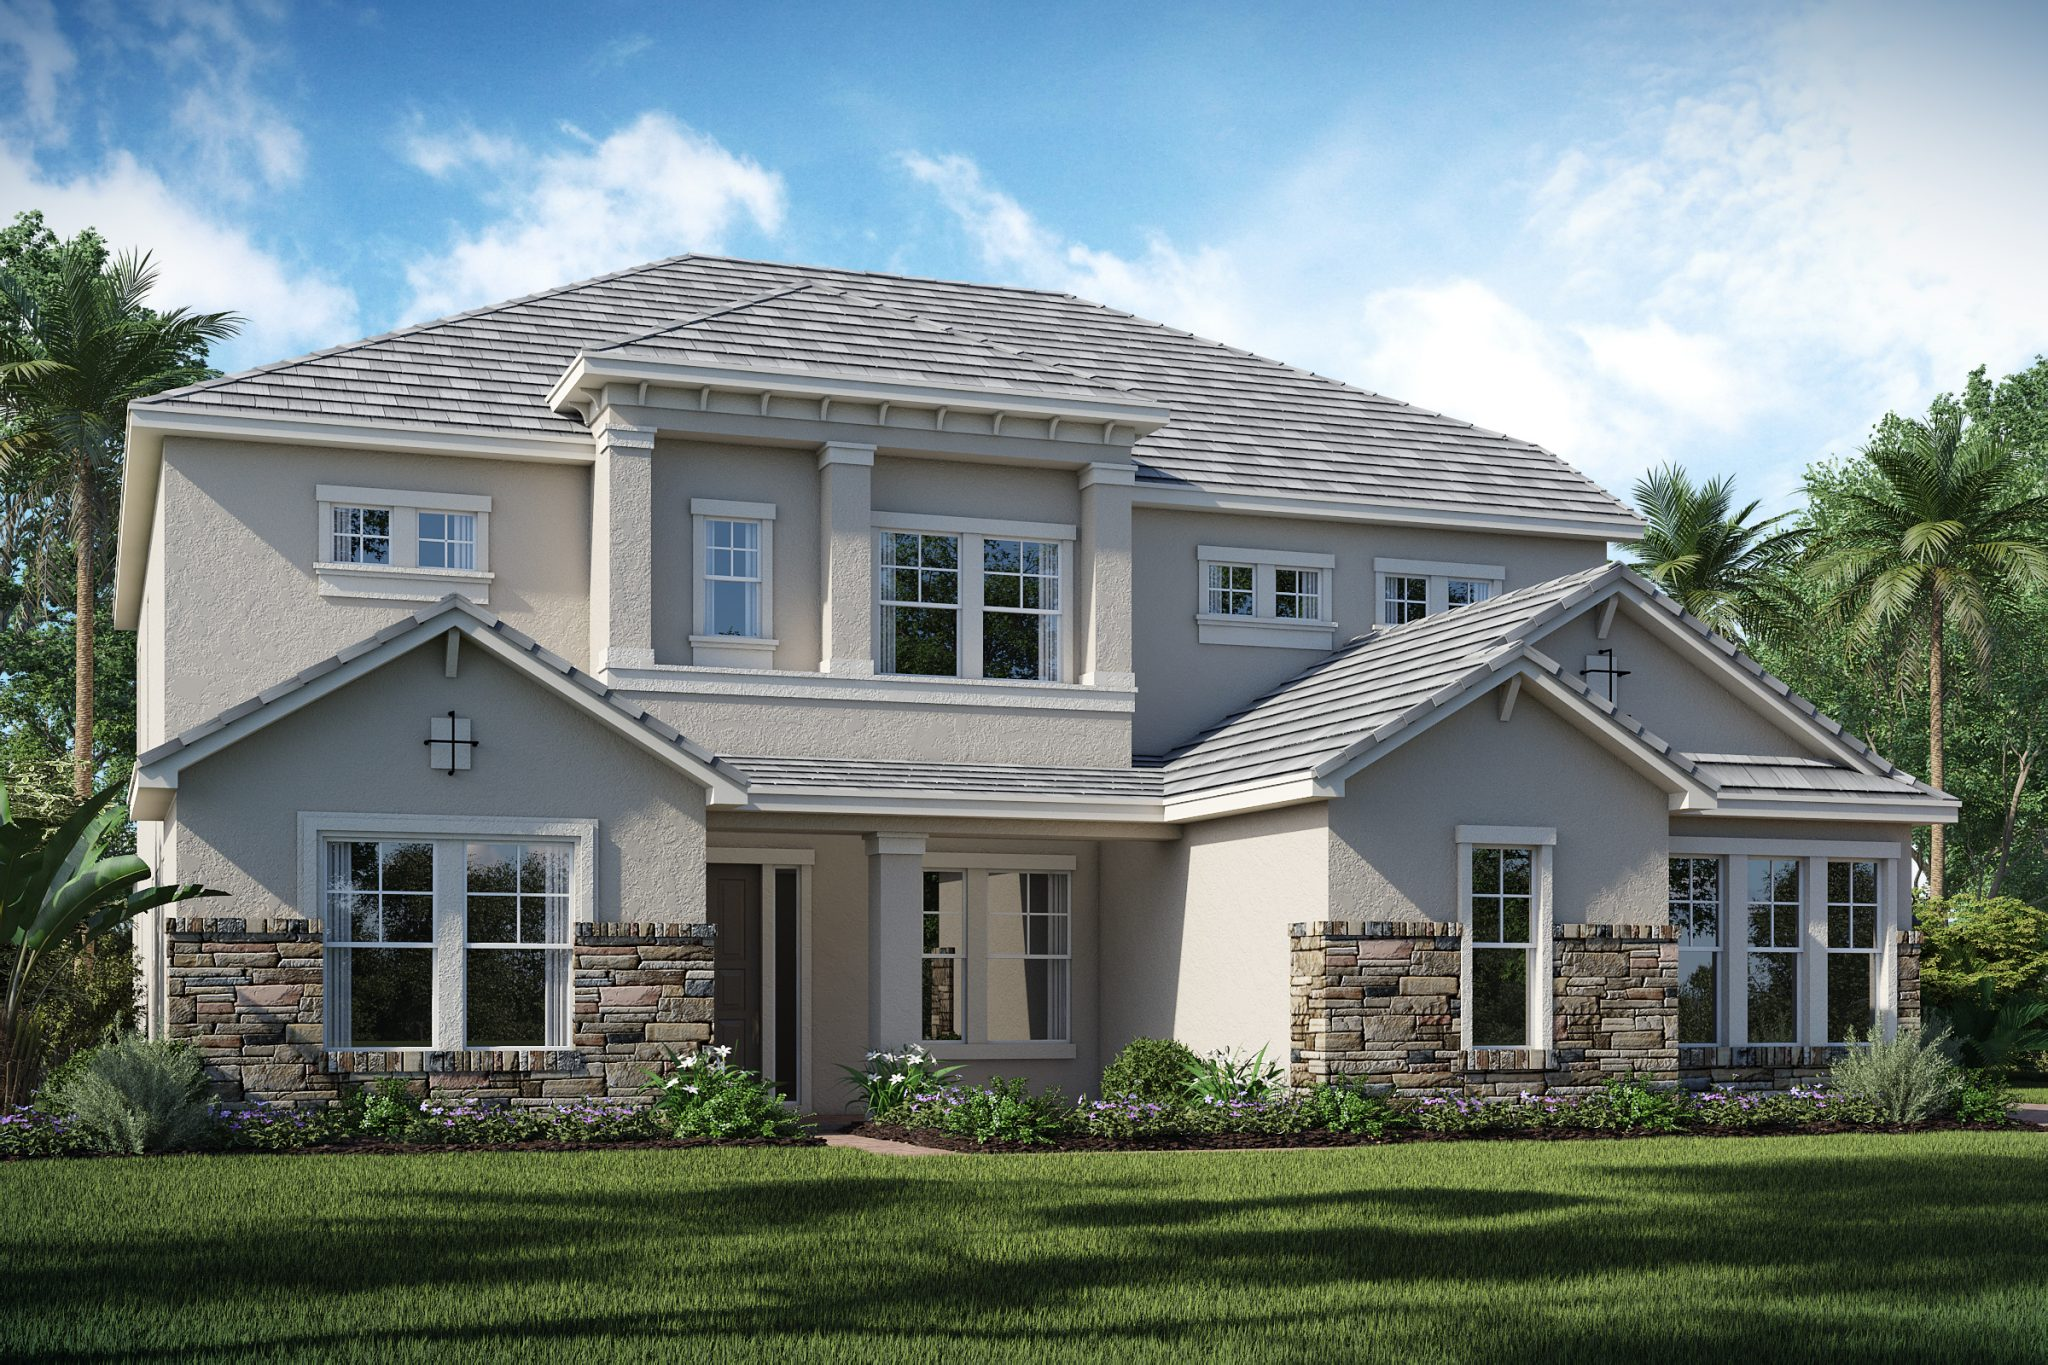 Central Florida Experiencing Rapid Growth in New Home Construction